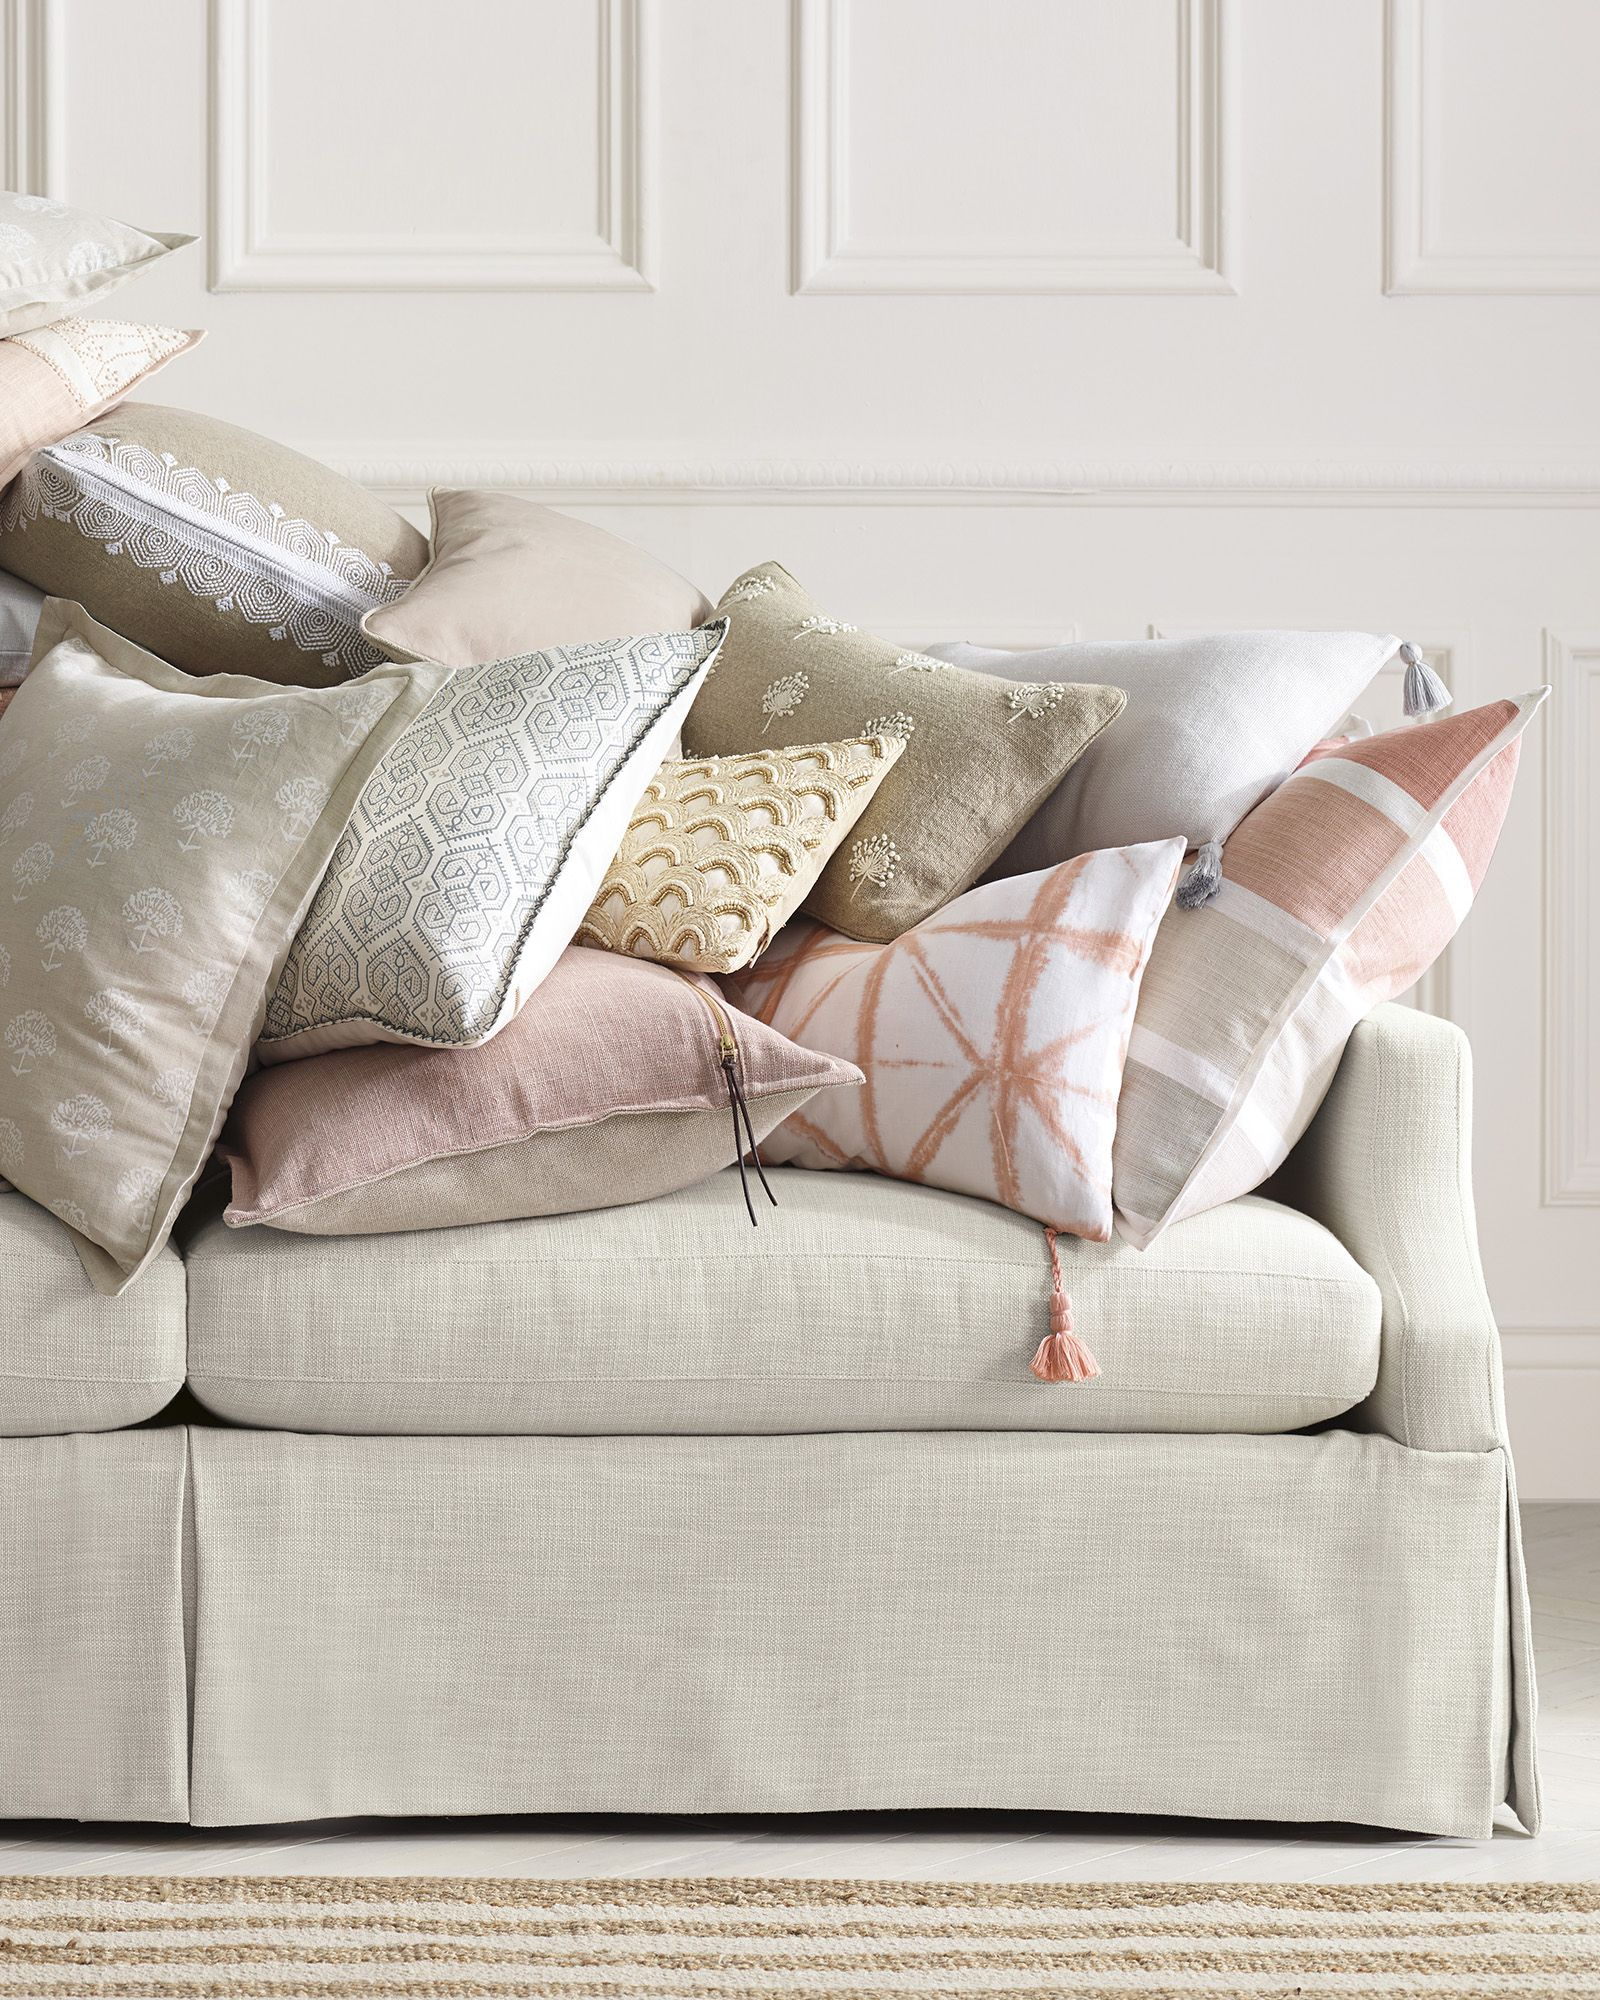 Sienna Small Tile Pillow Cover | Throw